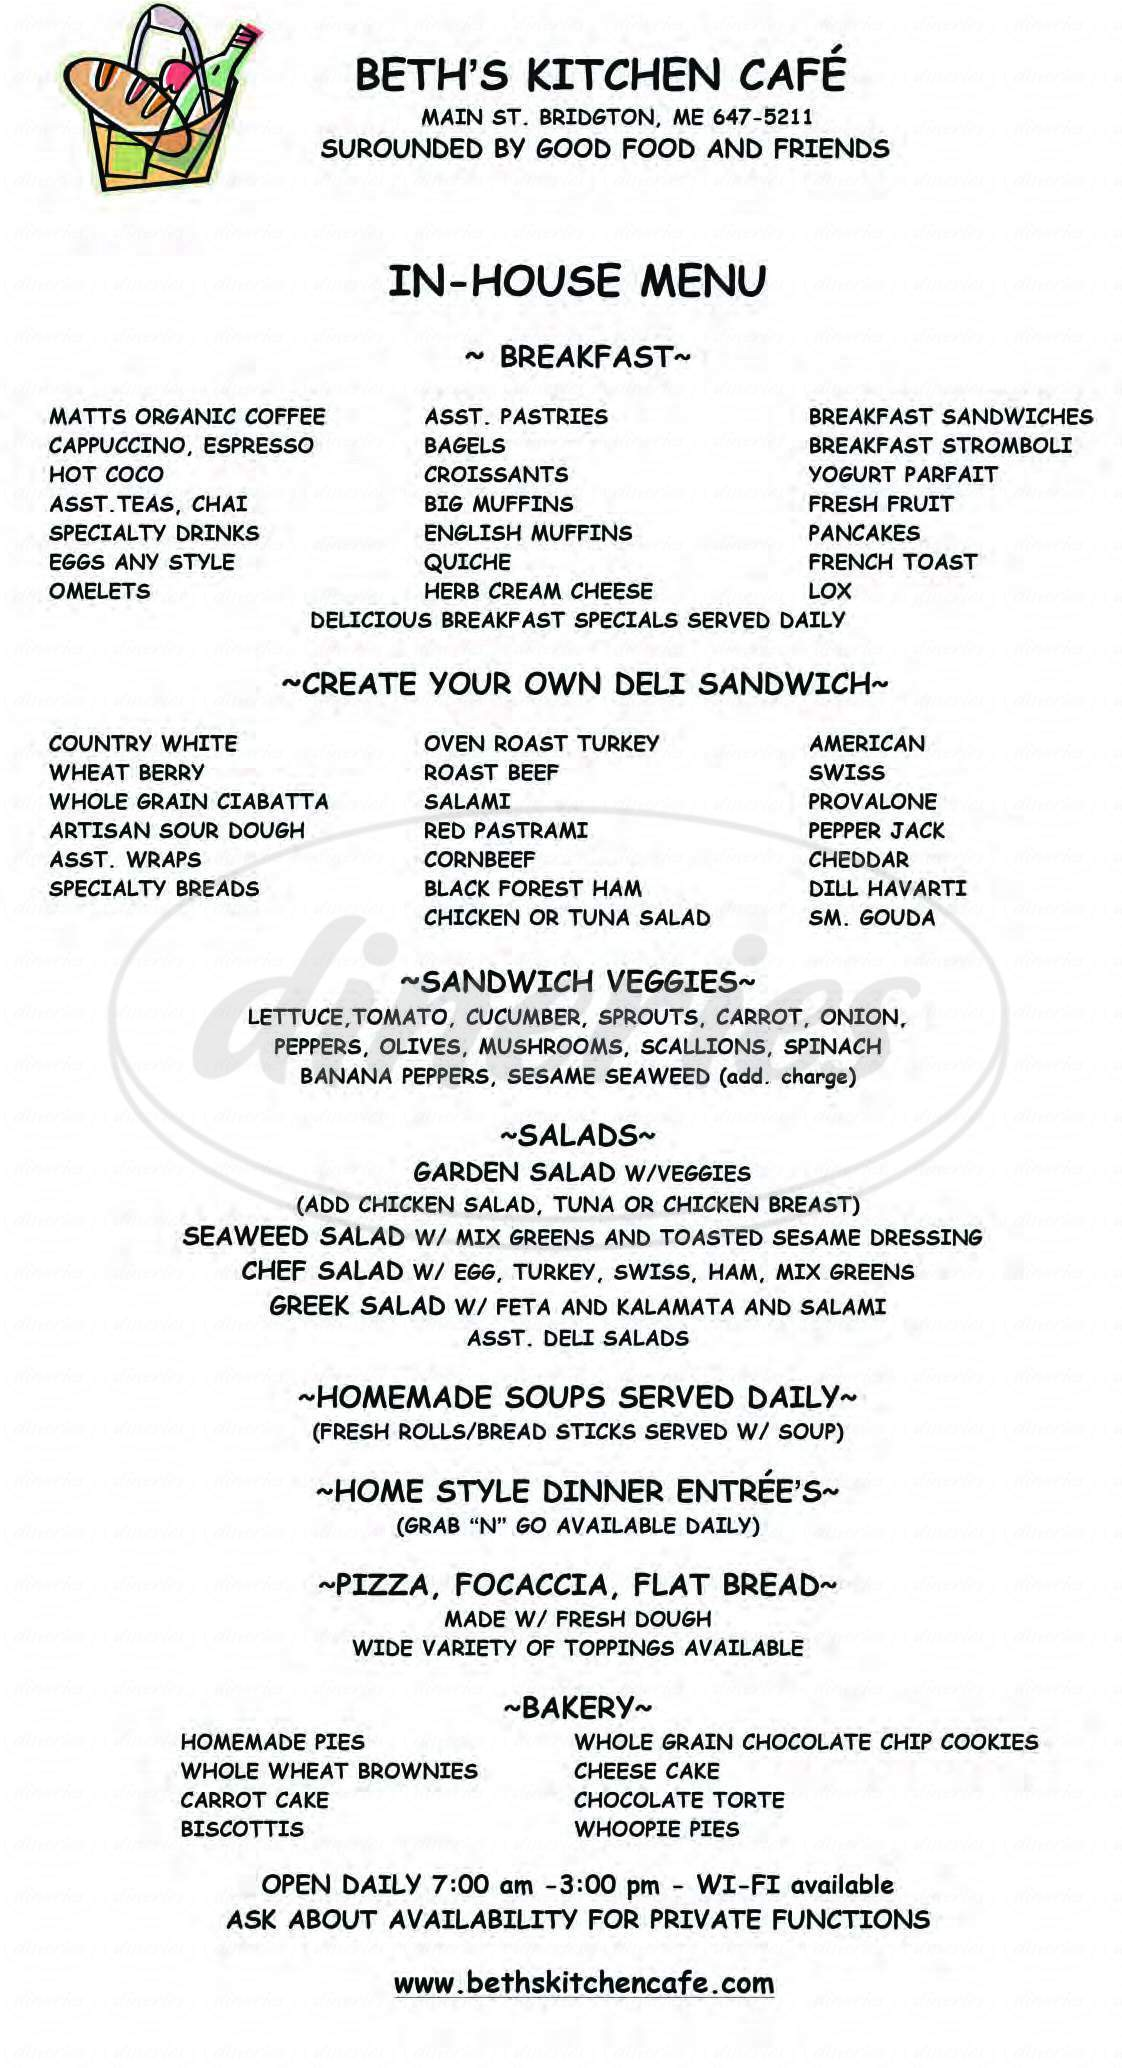 menu for Beth's Kitchen Cafe